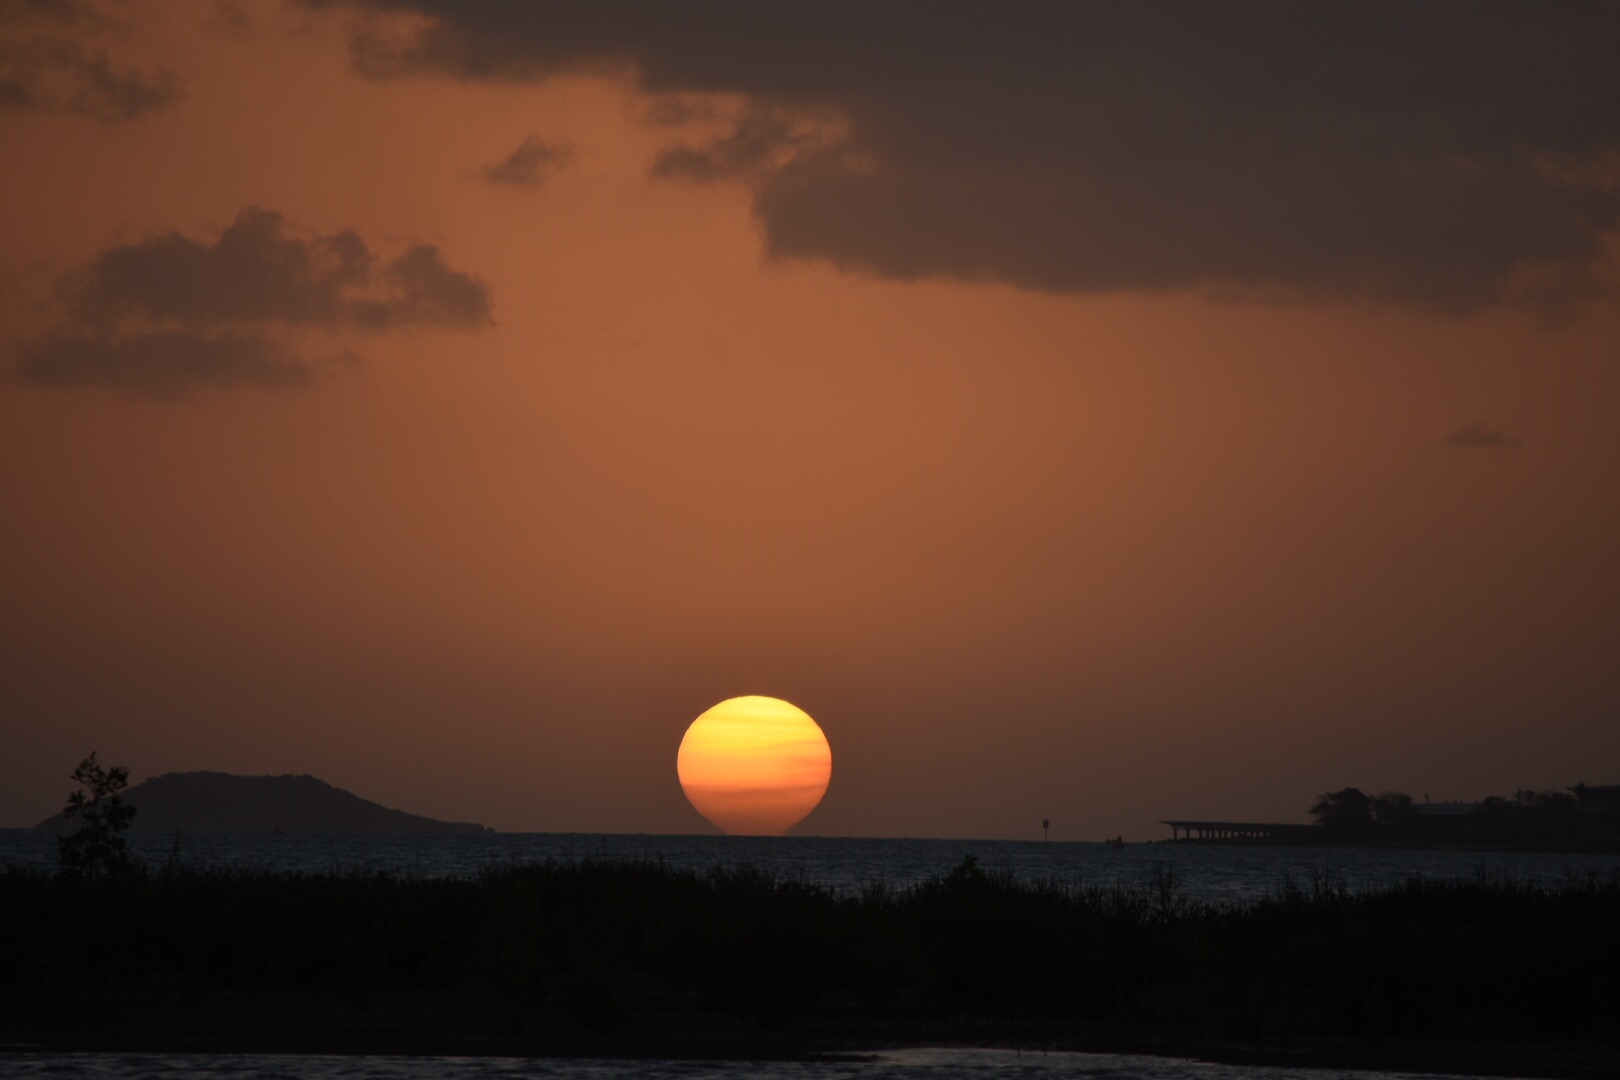 Sunset from Horn island